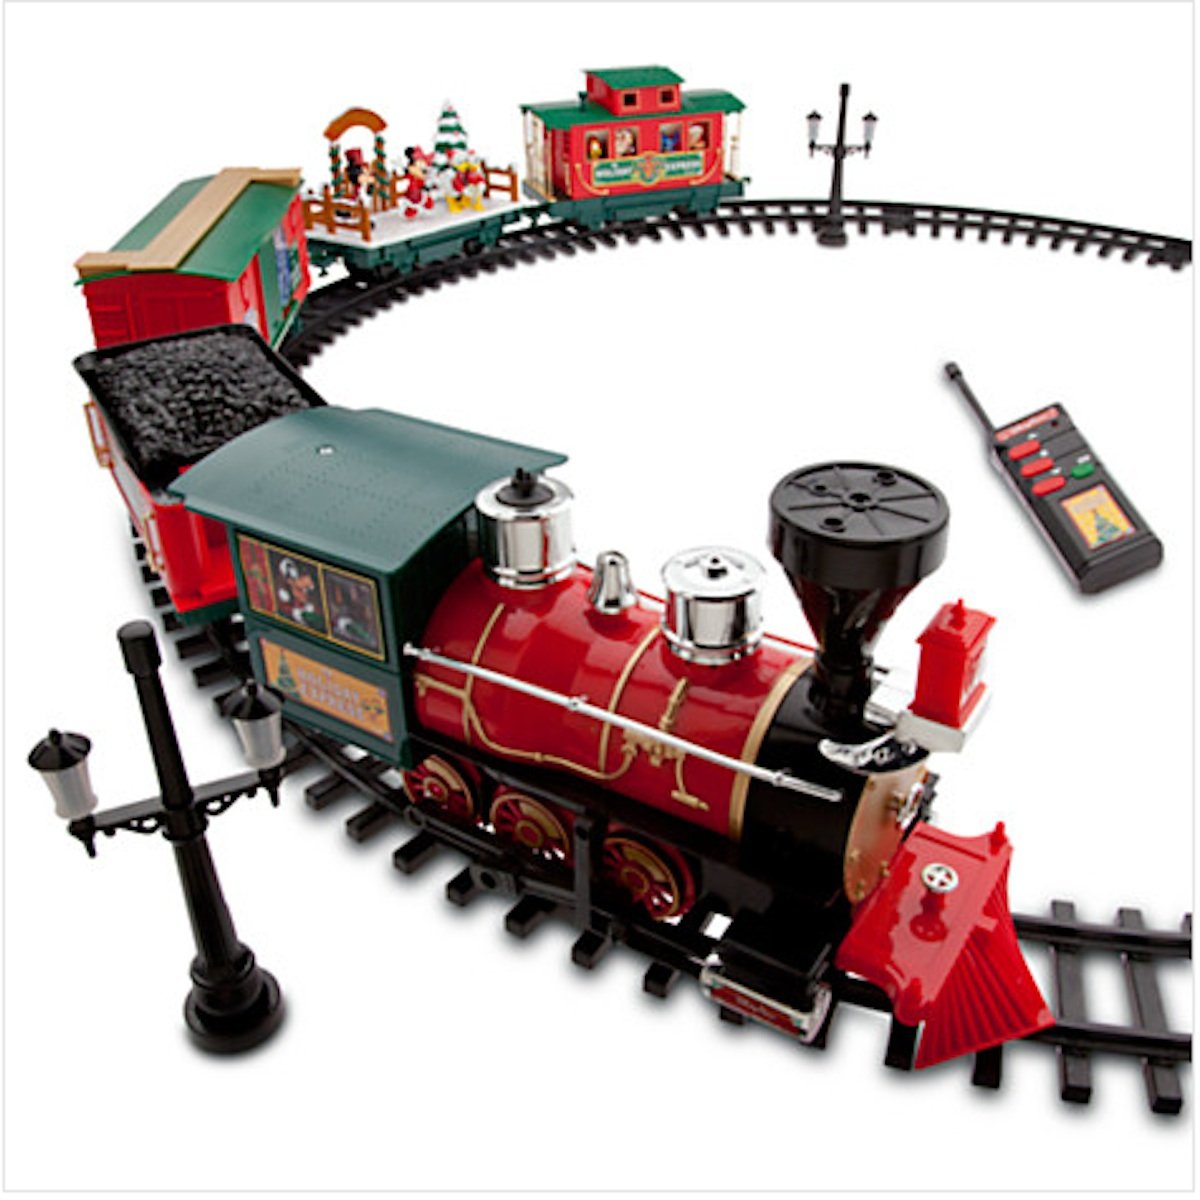 Disney Park 30 piece Christmas Train Set with Mickey, Goofy, Duffy, Chip and Dale